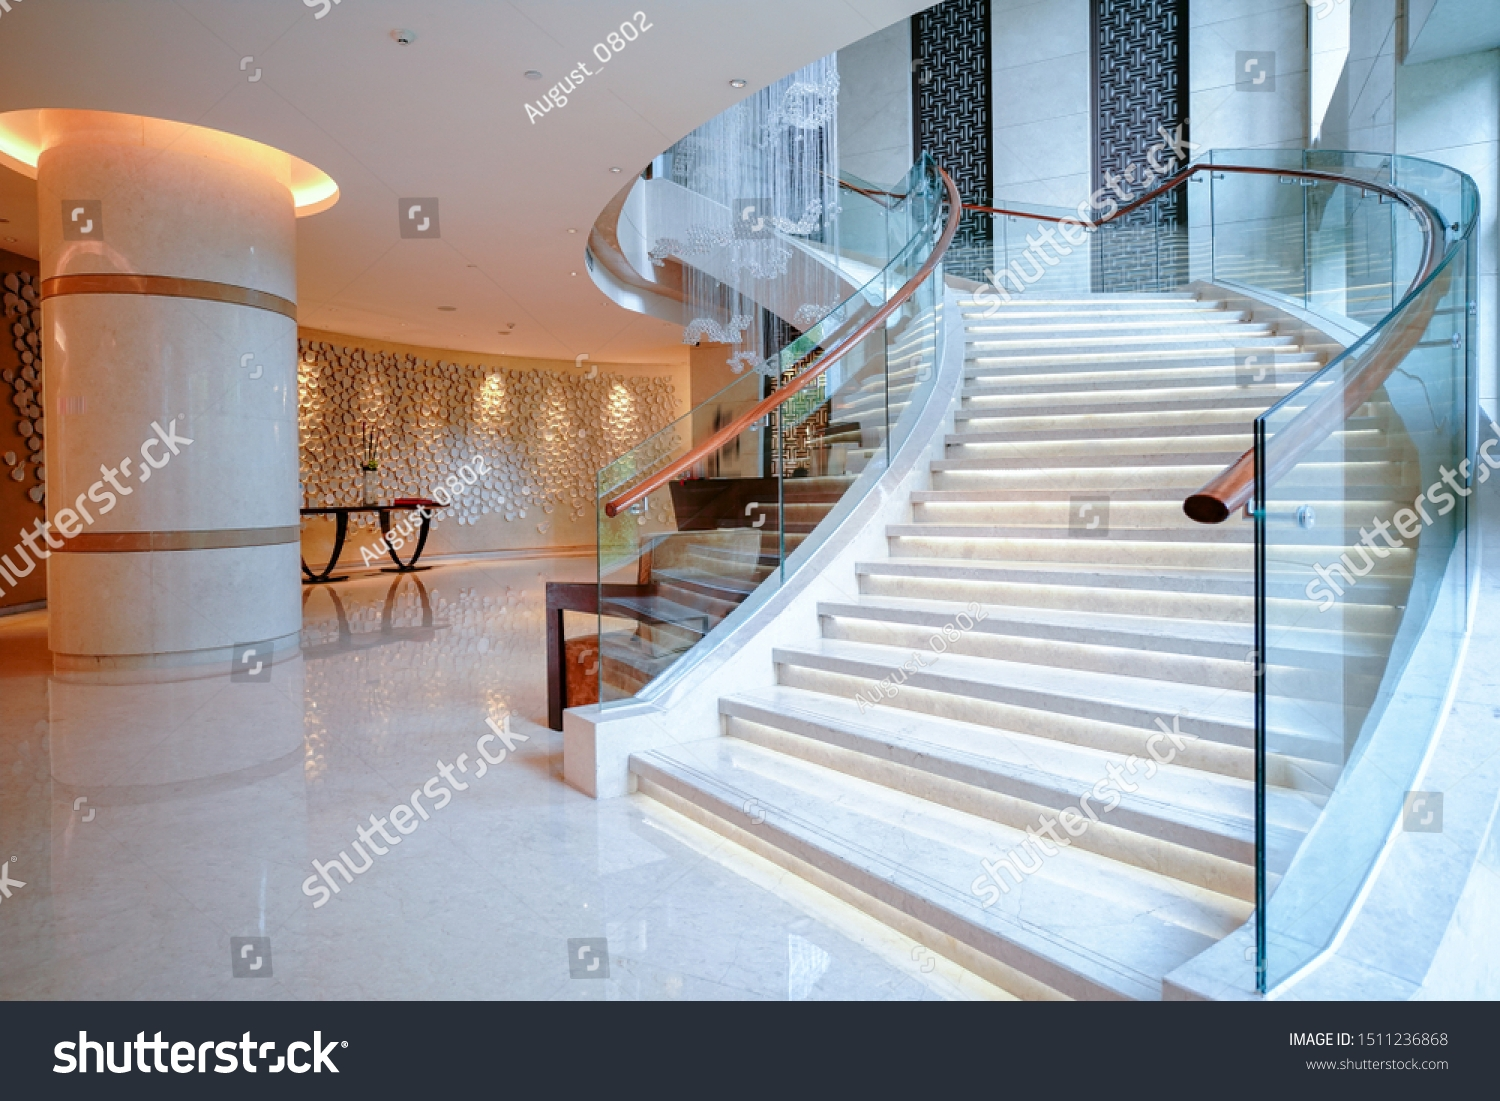 Spiral Staircase Inside Building Modern Spiral Buildings | Building A Spiral Staircase | Spiral Stairs | Handrail | Old Fashioned | Wood | Double Spiral